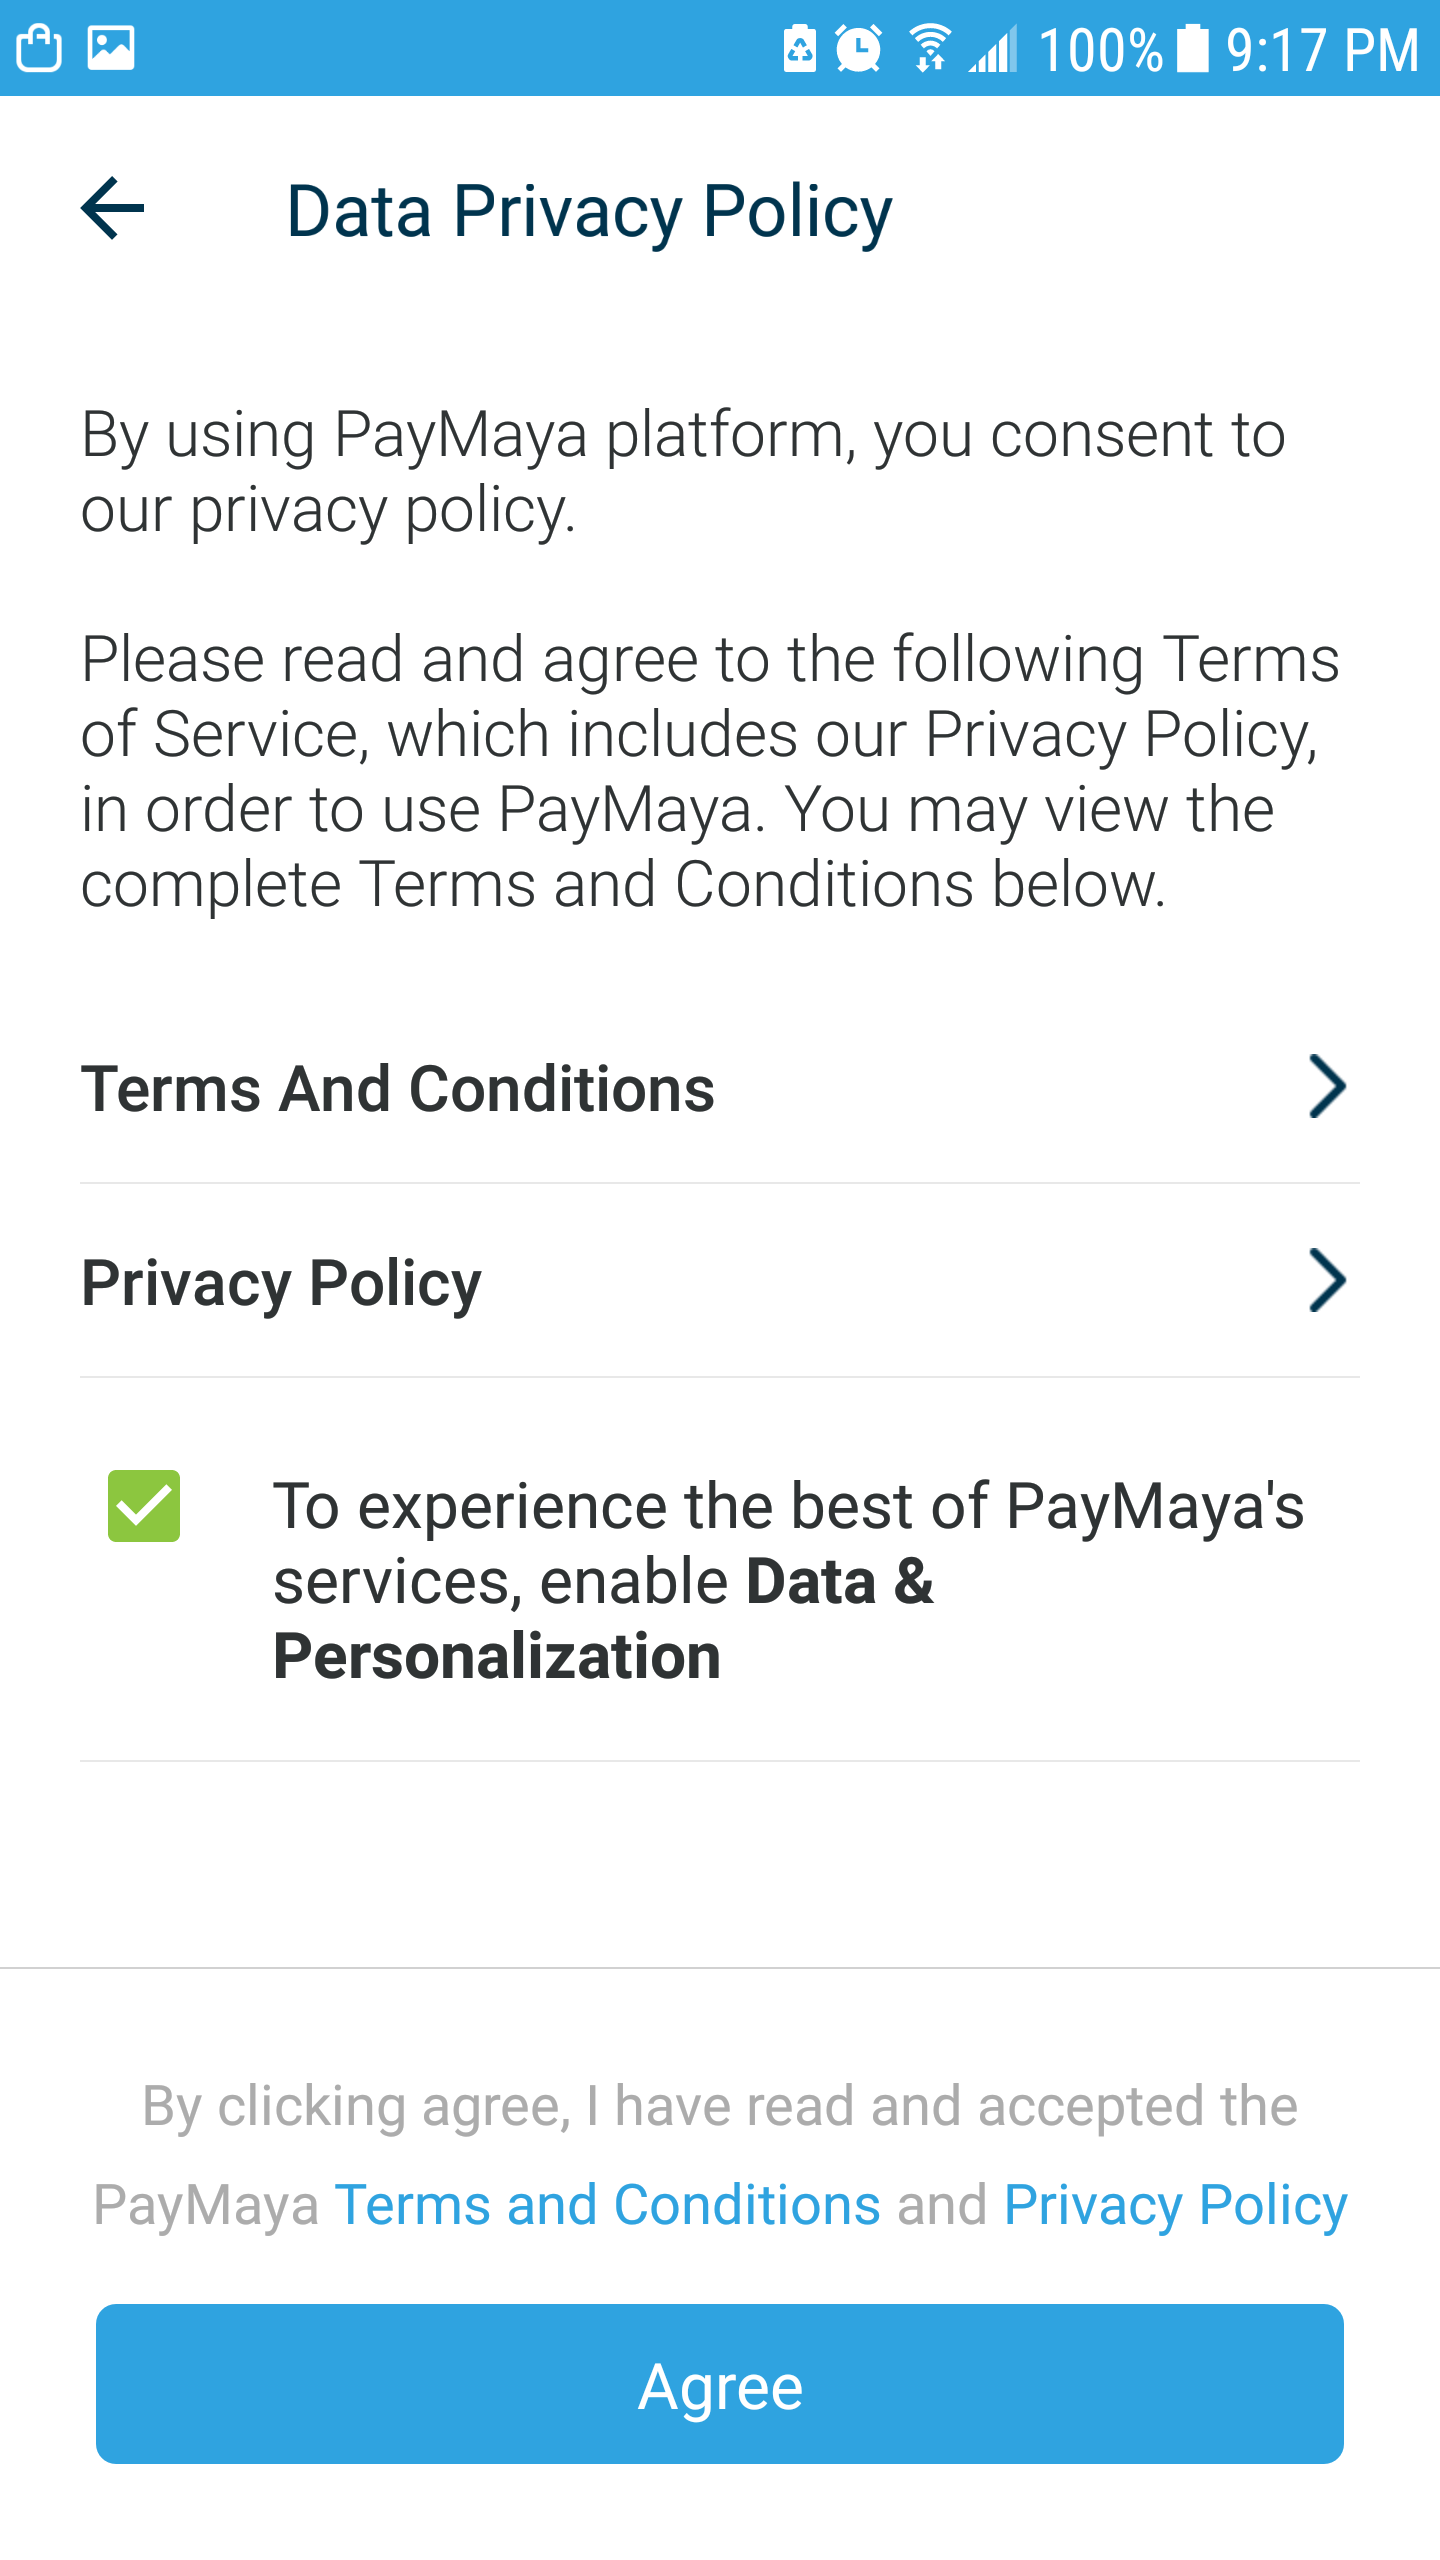 How to Register and Use PayMaya (Add, Send Money, Pay Bills)